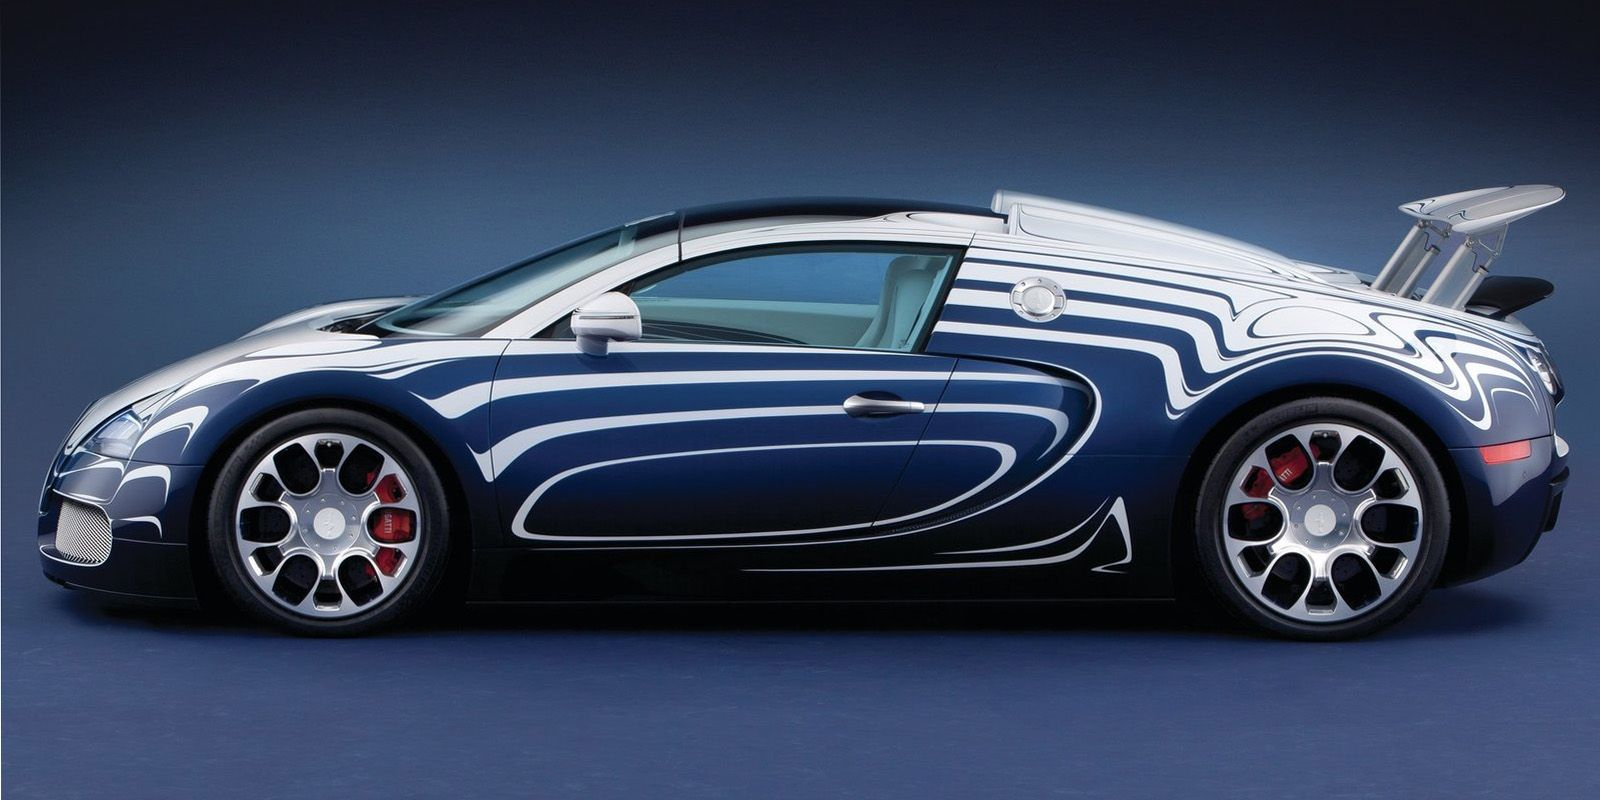 "<p>The French automaker teamed up with German porcelain maker Königliche Porzellan-Manufaktur Berlin to create this porcelain-accented special edition. It was one-of-a-kind and <a href=""http://blog.caranddriver.com/bugatti-unveils-veyron-grand-sport-l%E2%80%99or-blanc-a-bug-in-a-porcelain-shop/"">cost about $2.4 million</a>. ""L'or Blanc"" translates to ""white gold.""</p>"